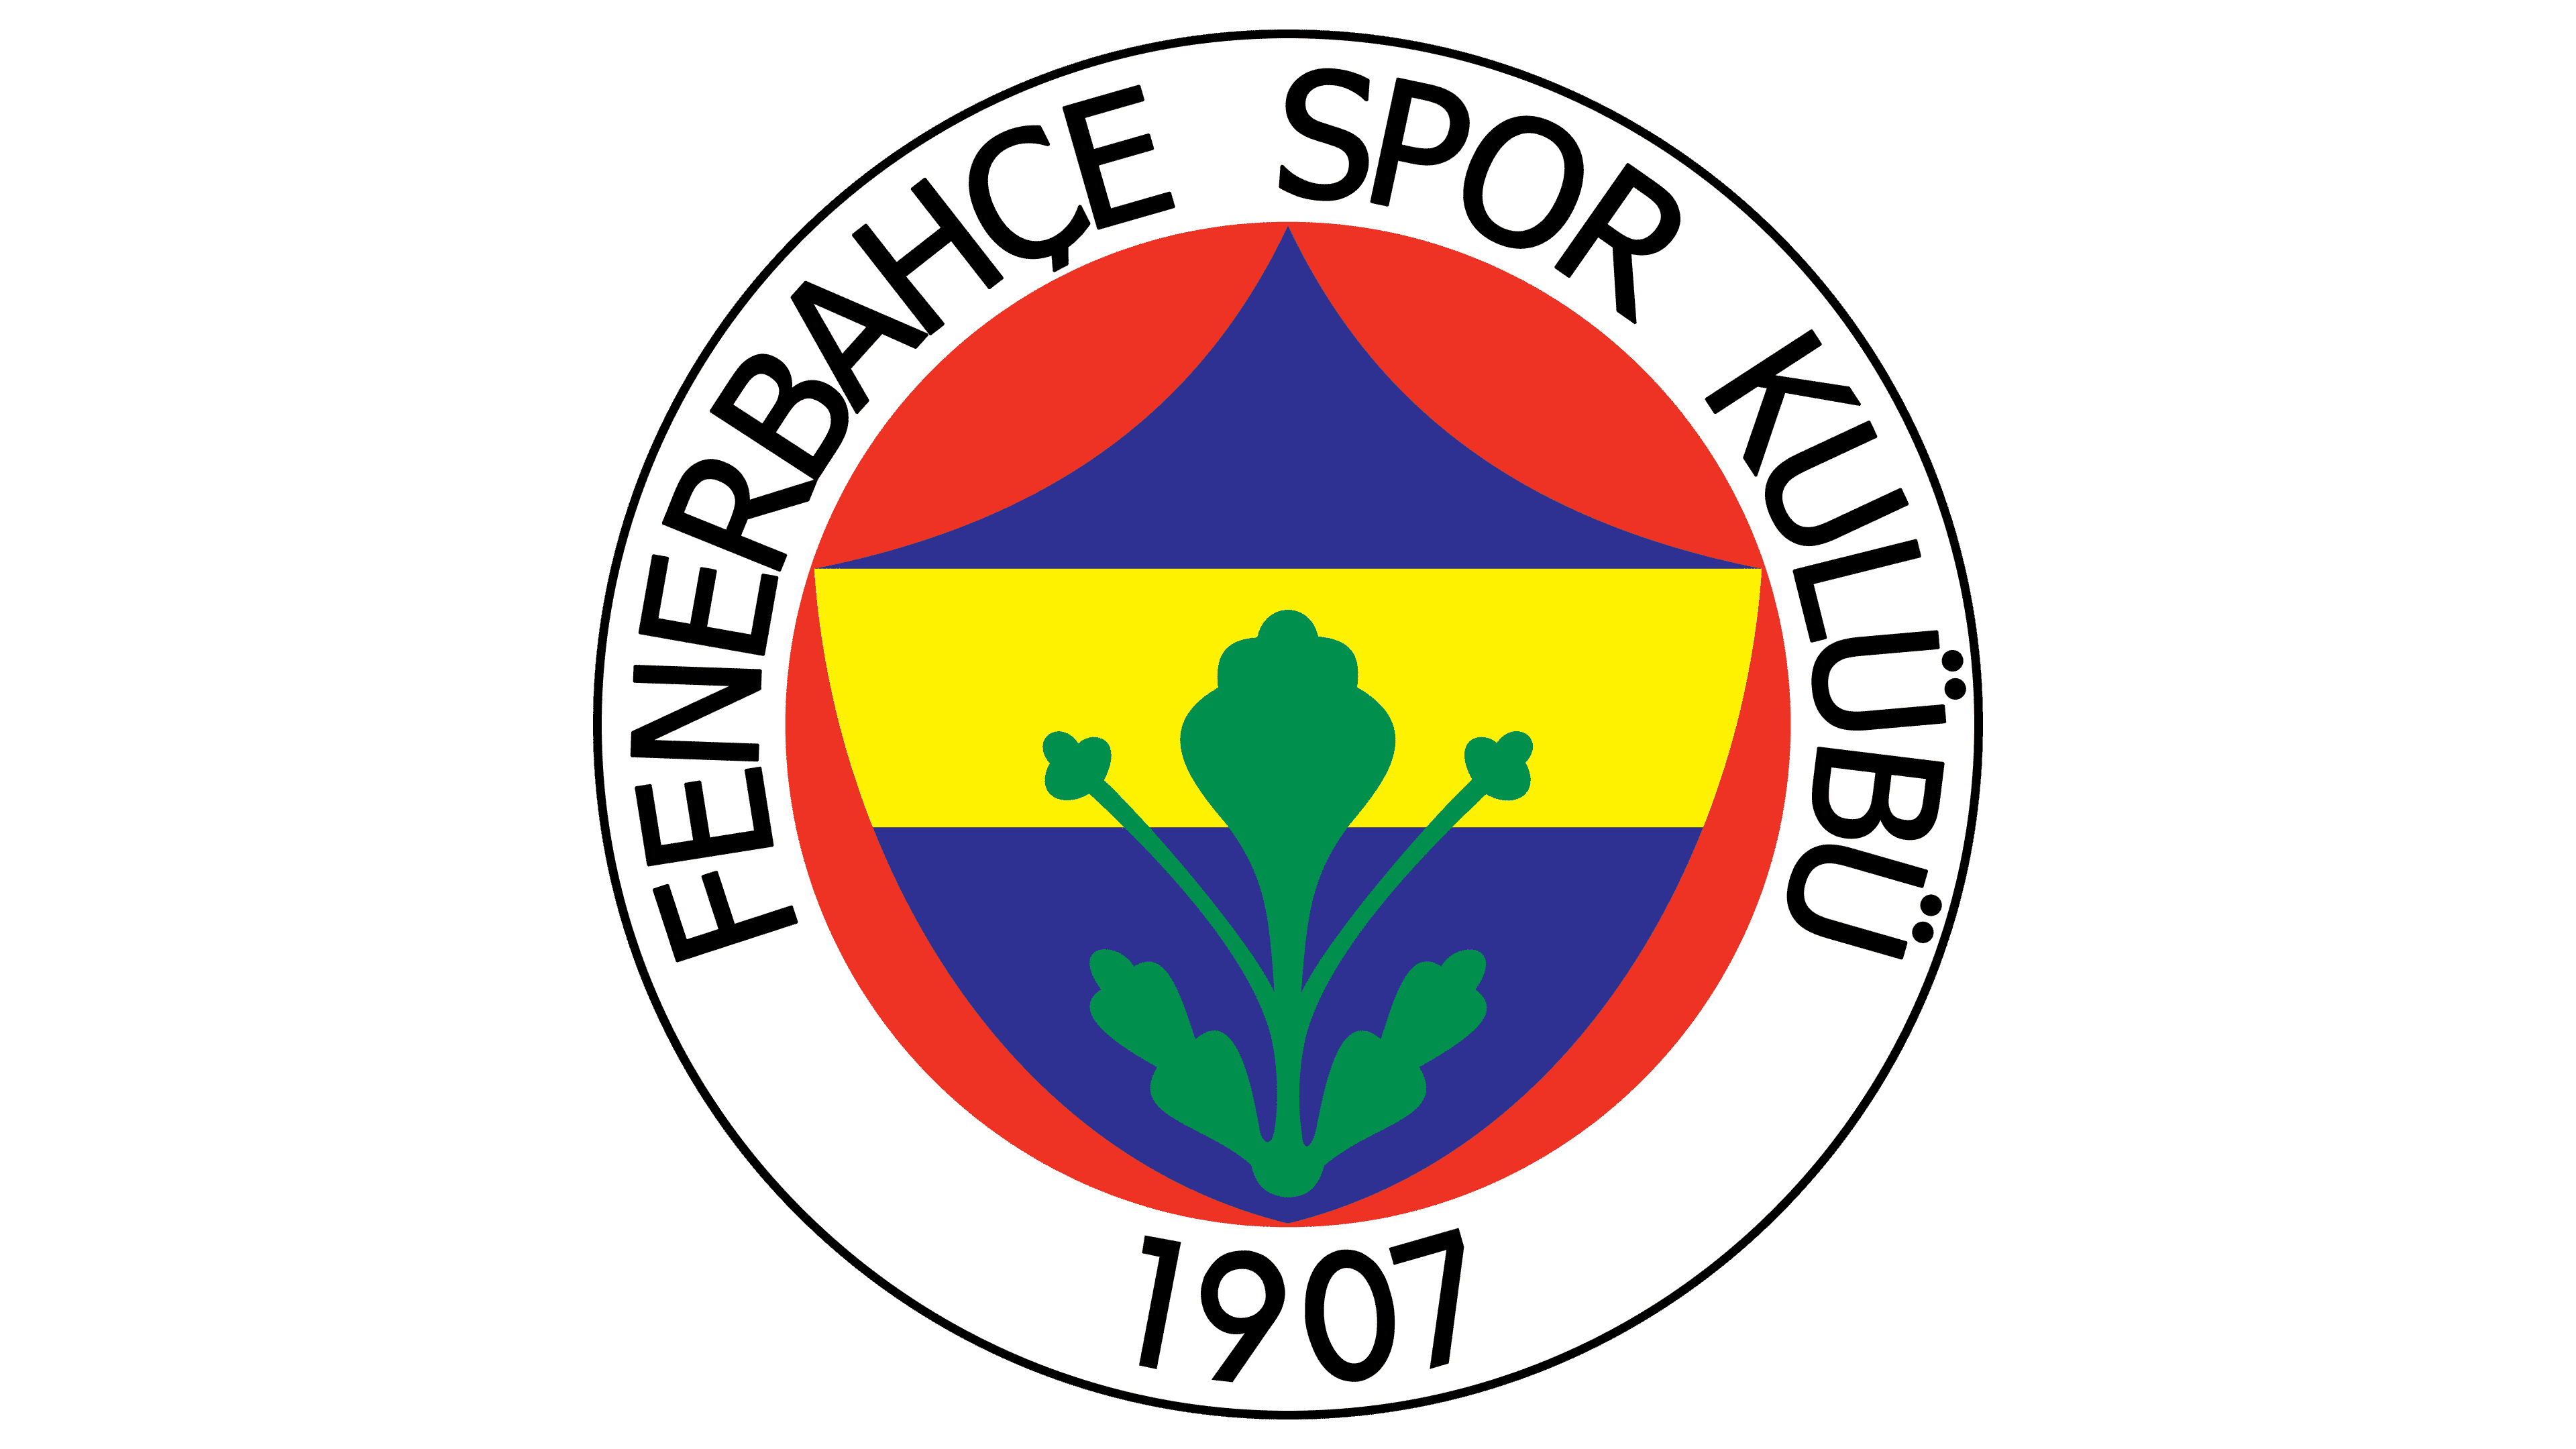 Fenerbahce Logo The Most Famous Brands And Company Logos In The World